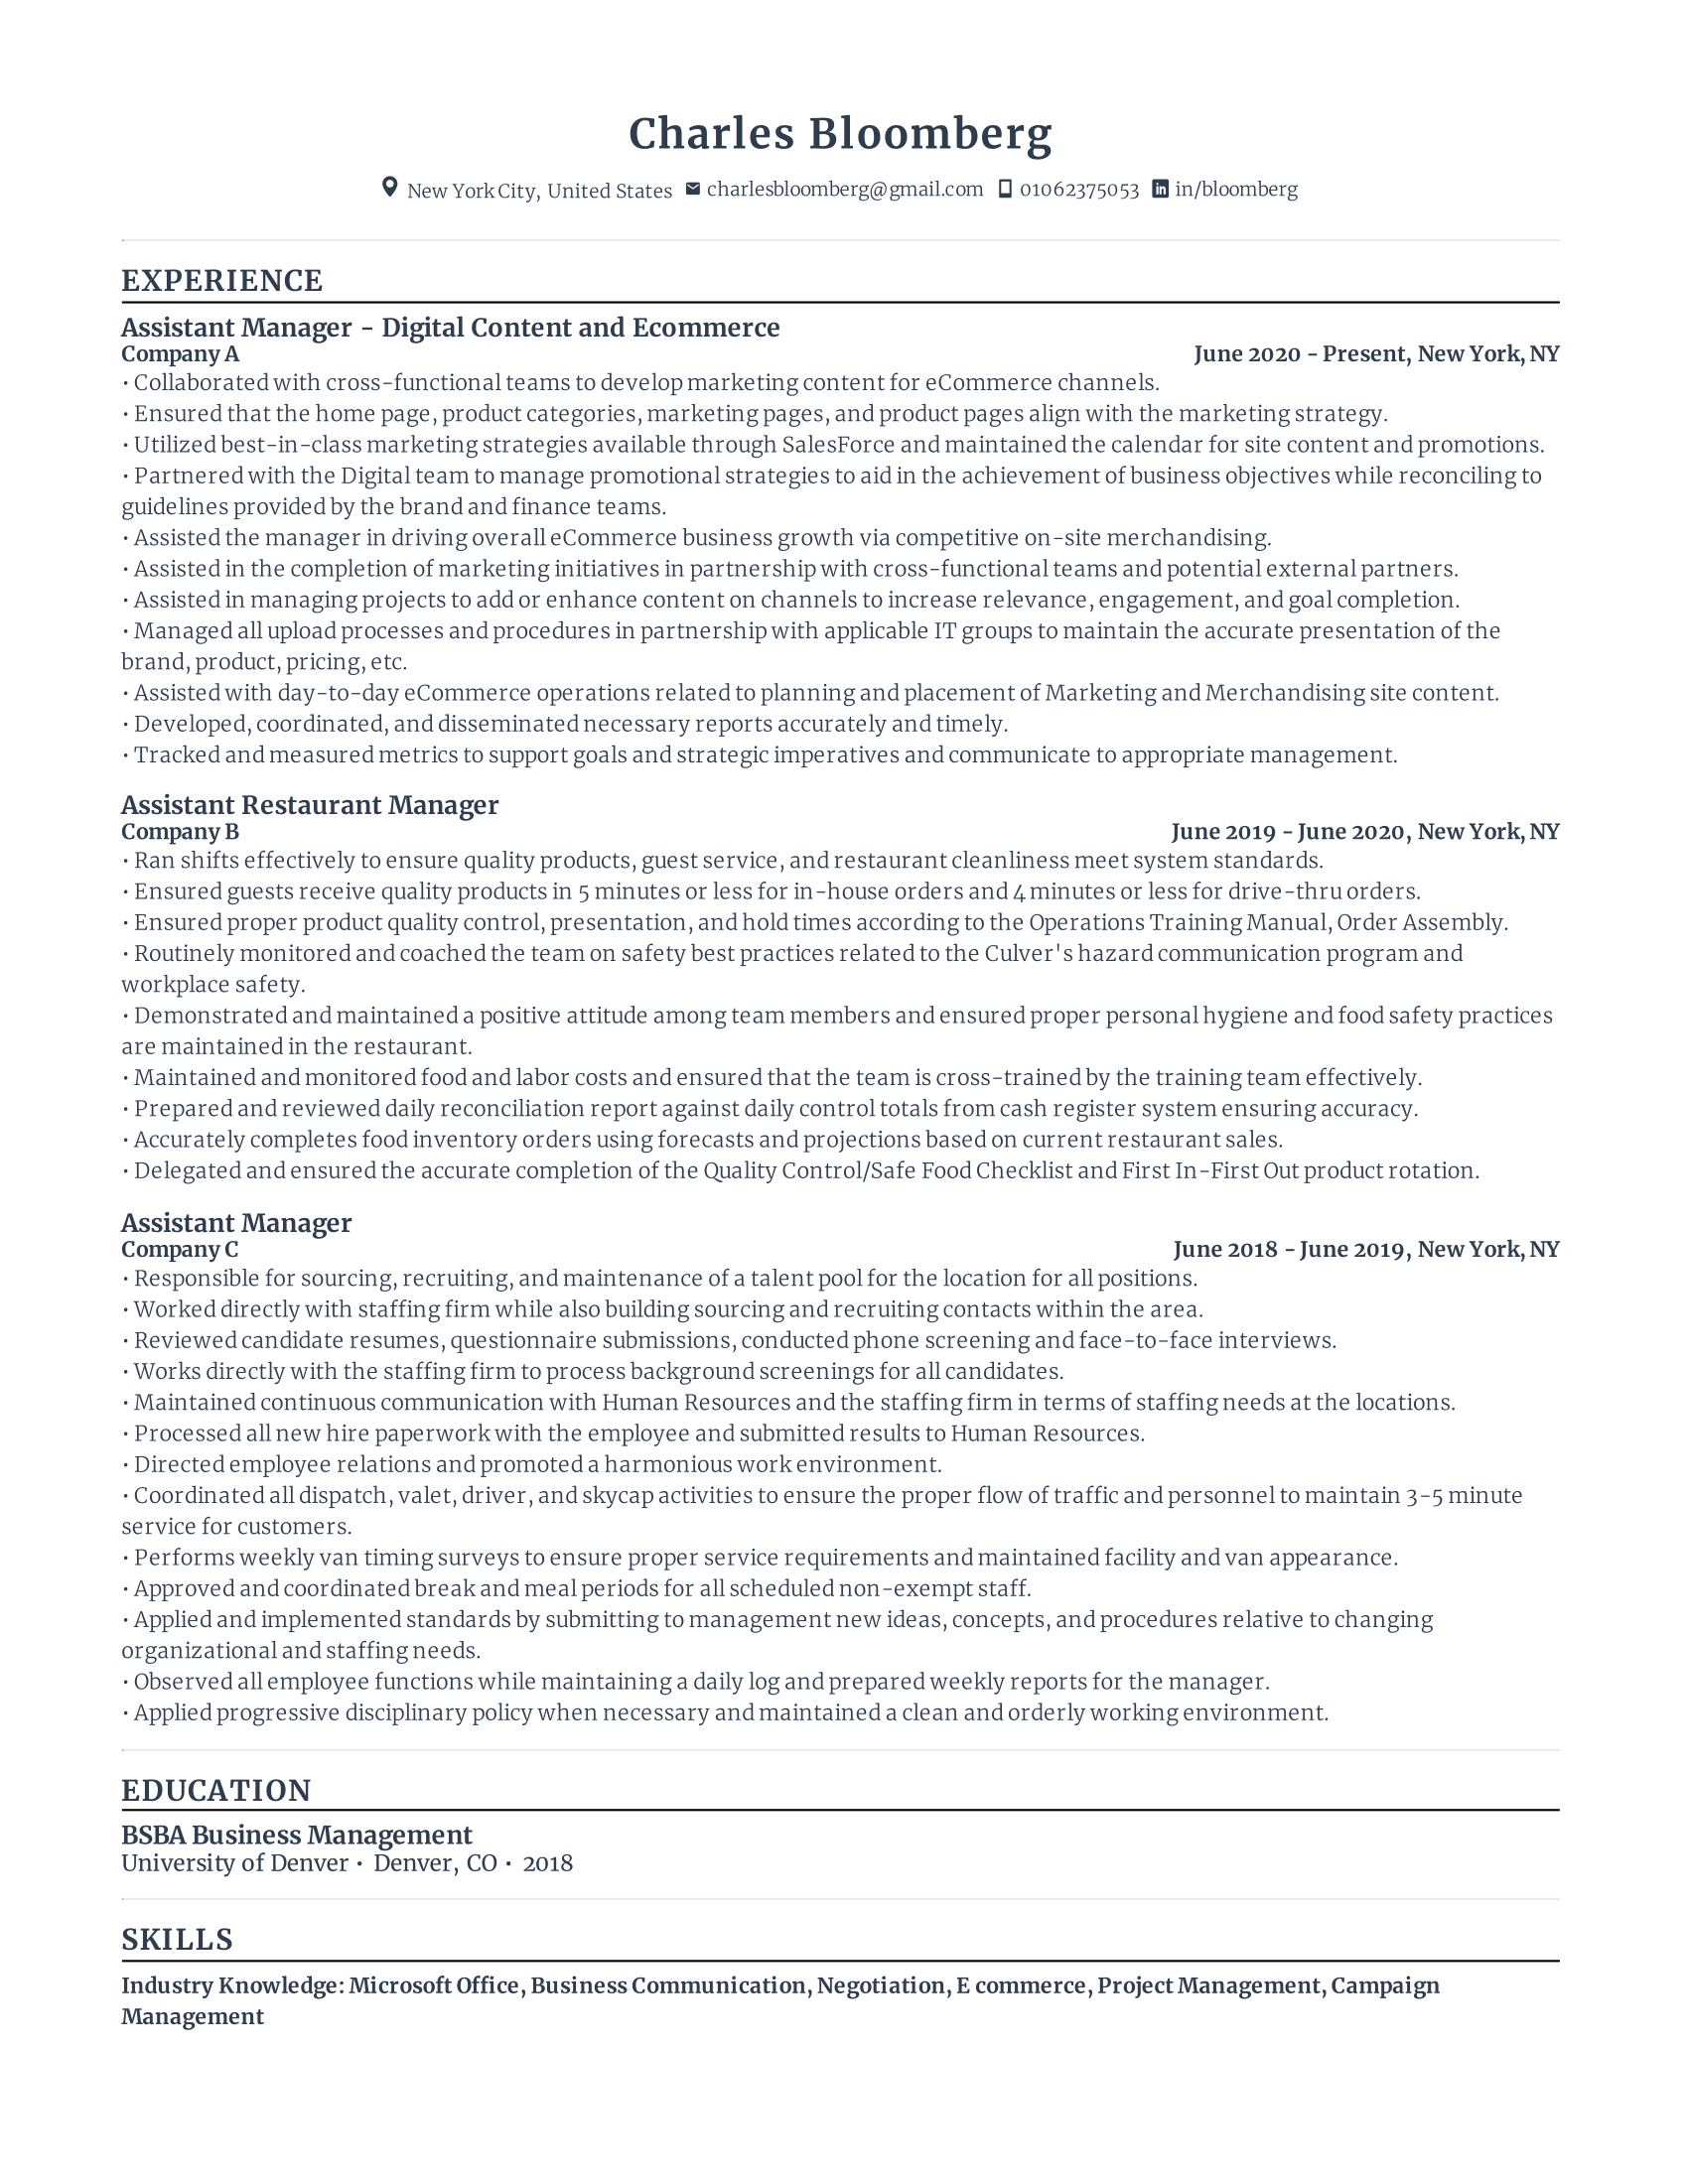 Resume Skills for Management Example